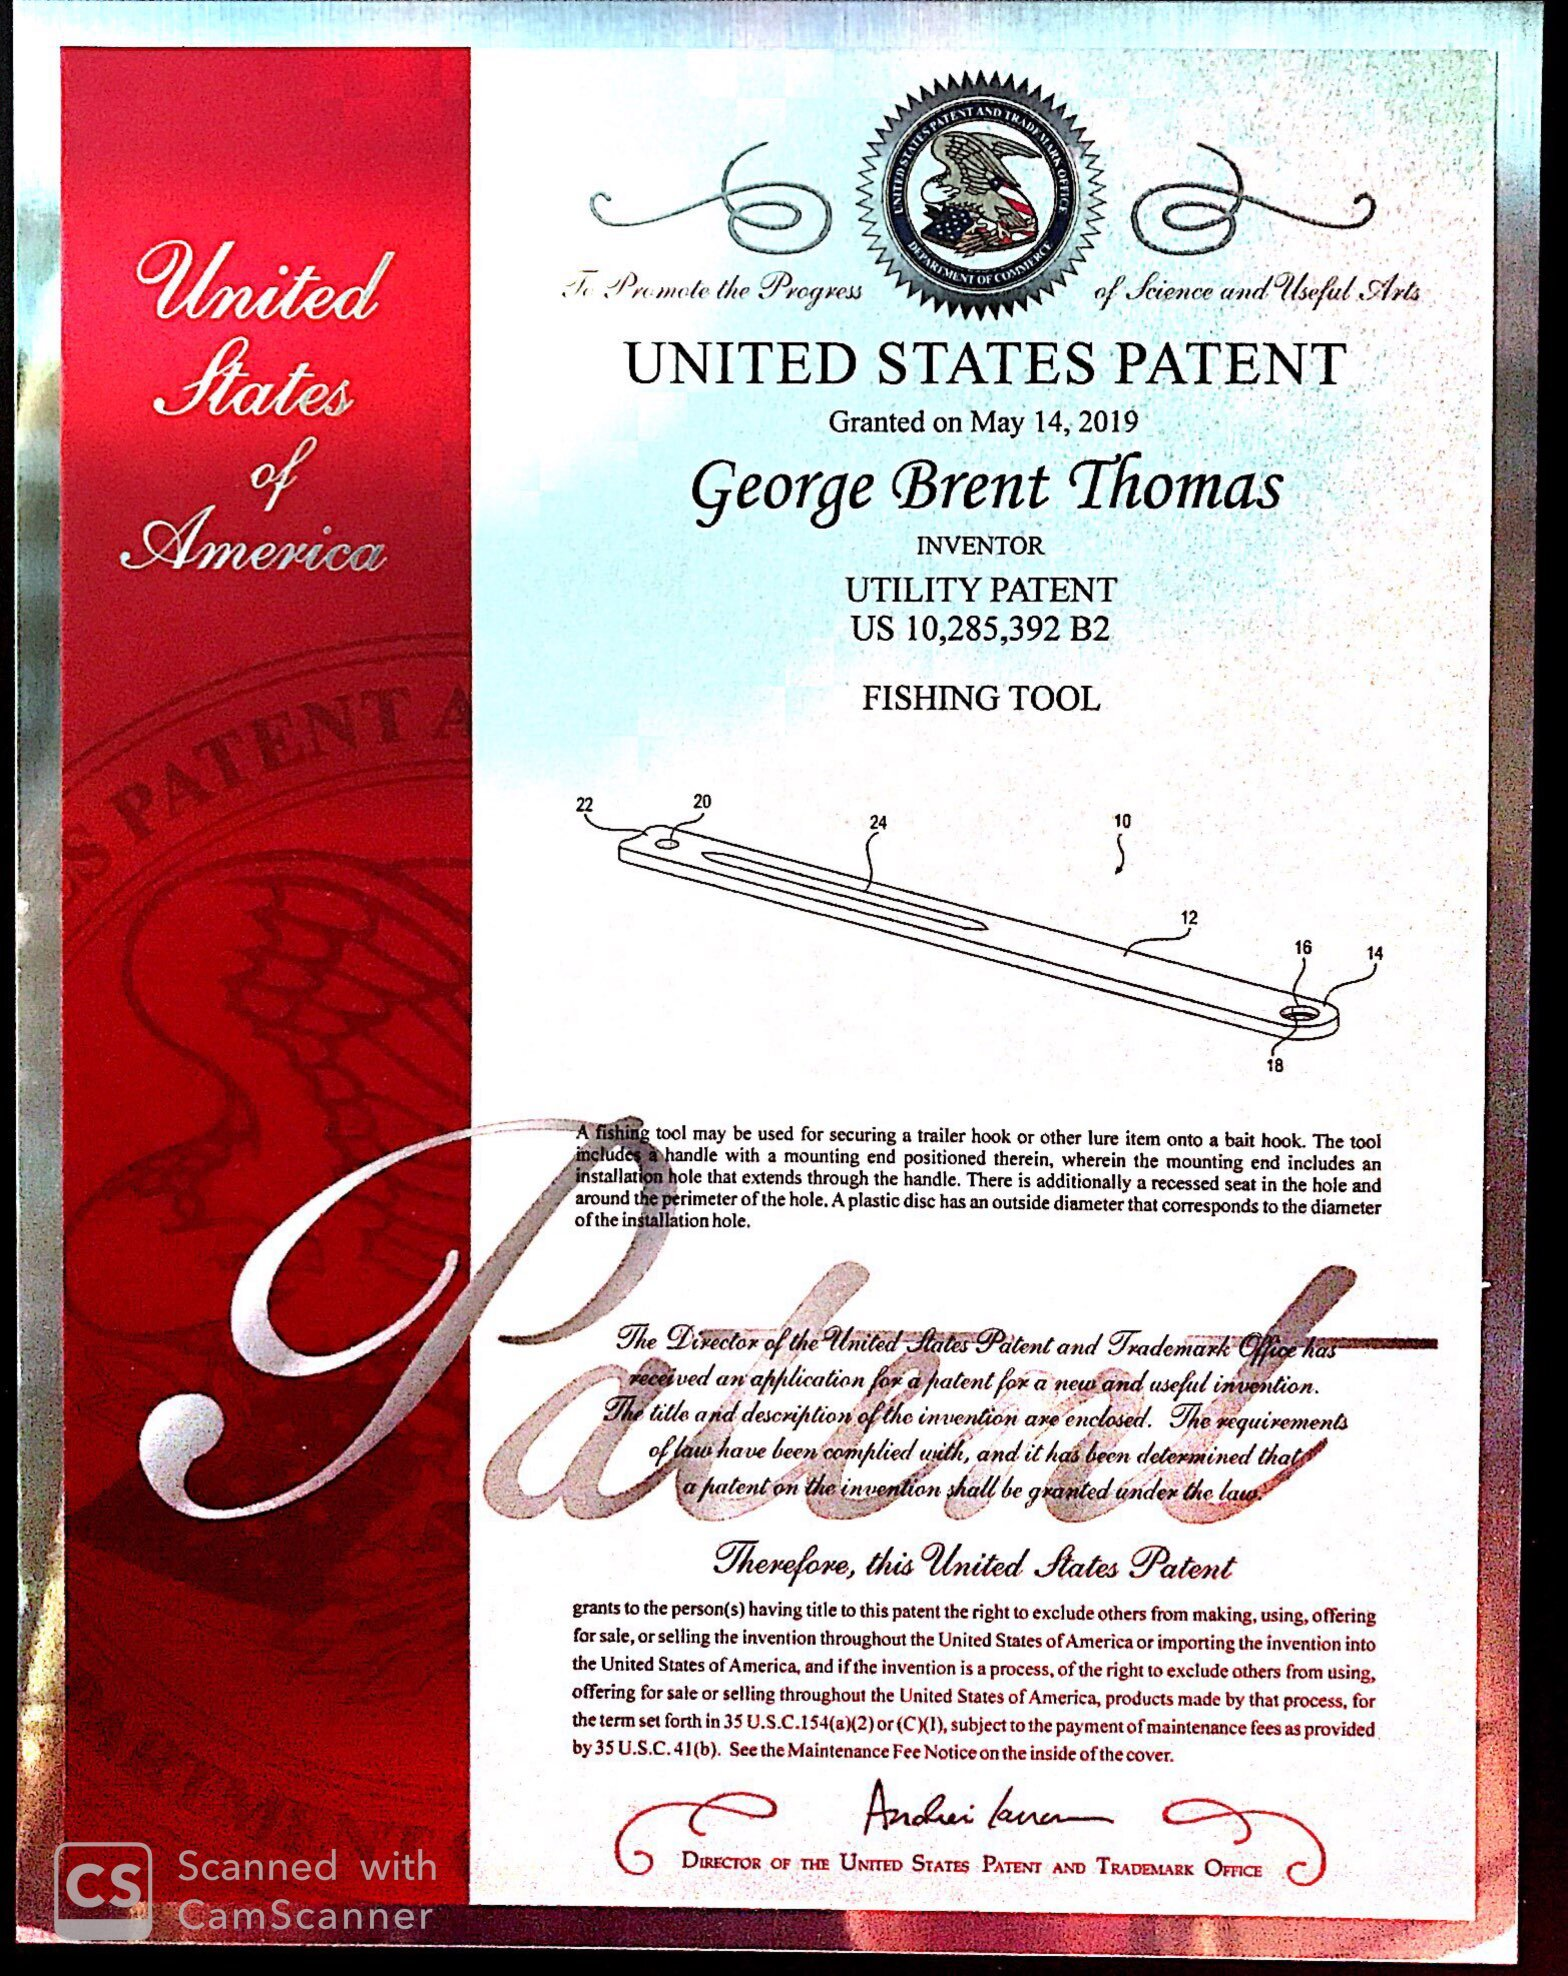 patent picture.JPG